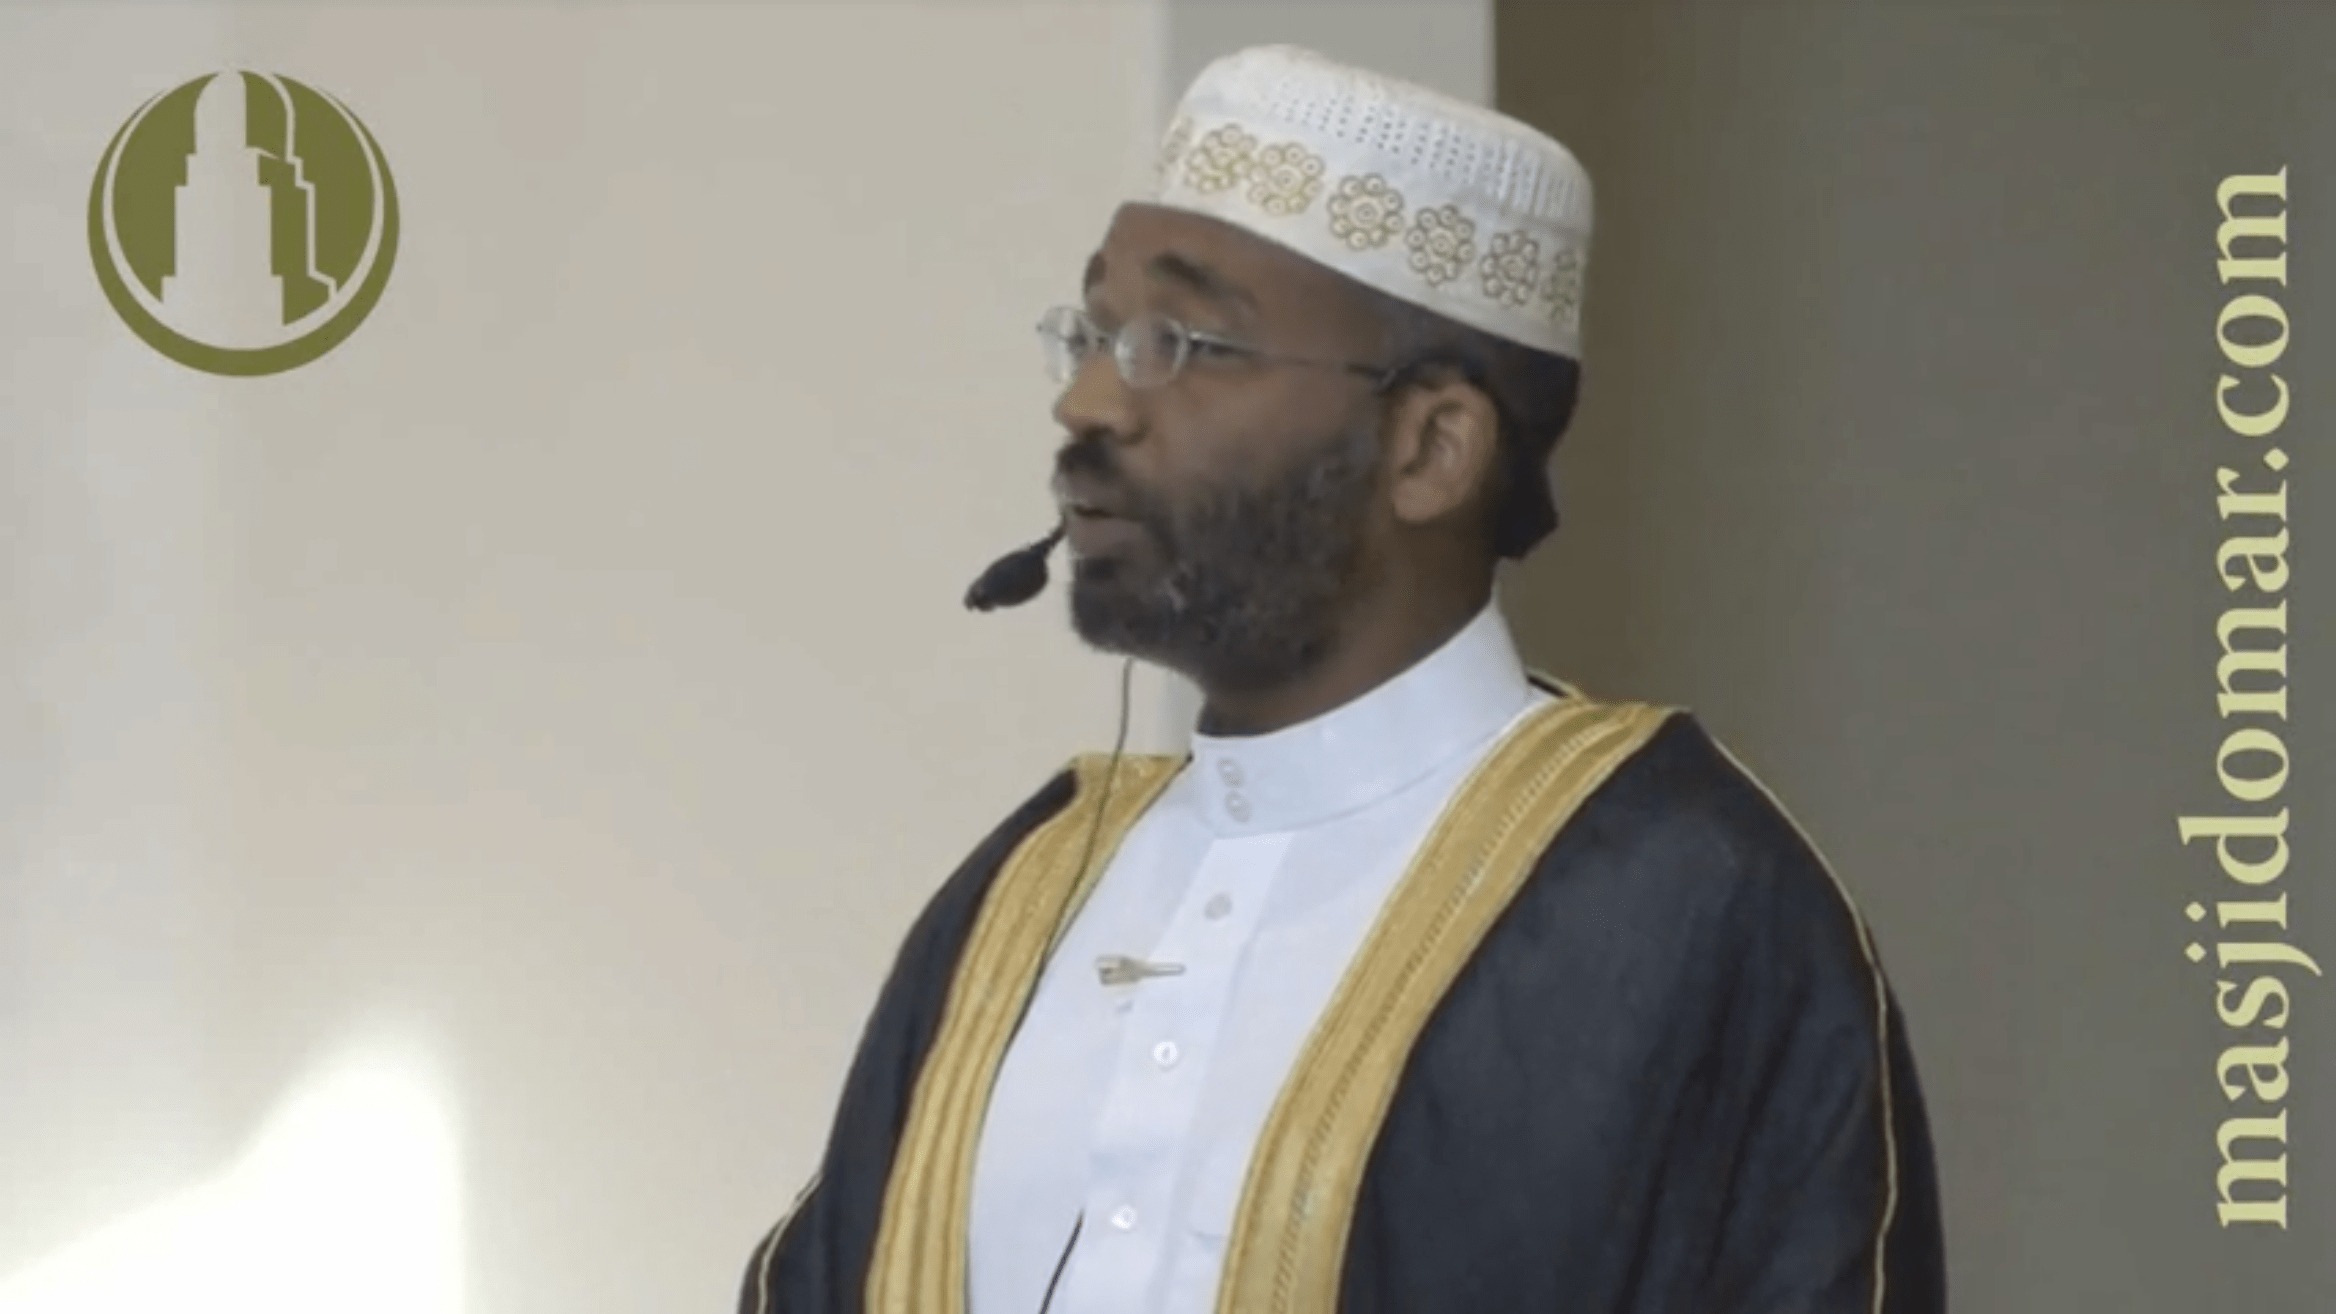 Yassir Fazaga – How Do You Handle Yourself in Time of Difficulties